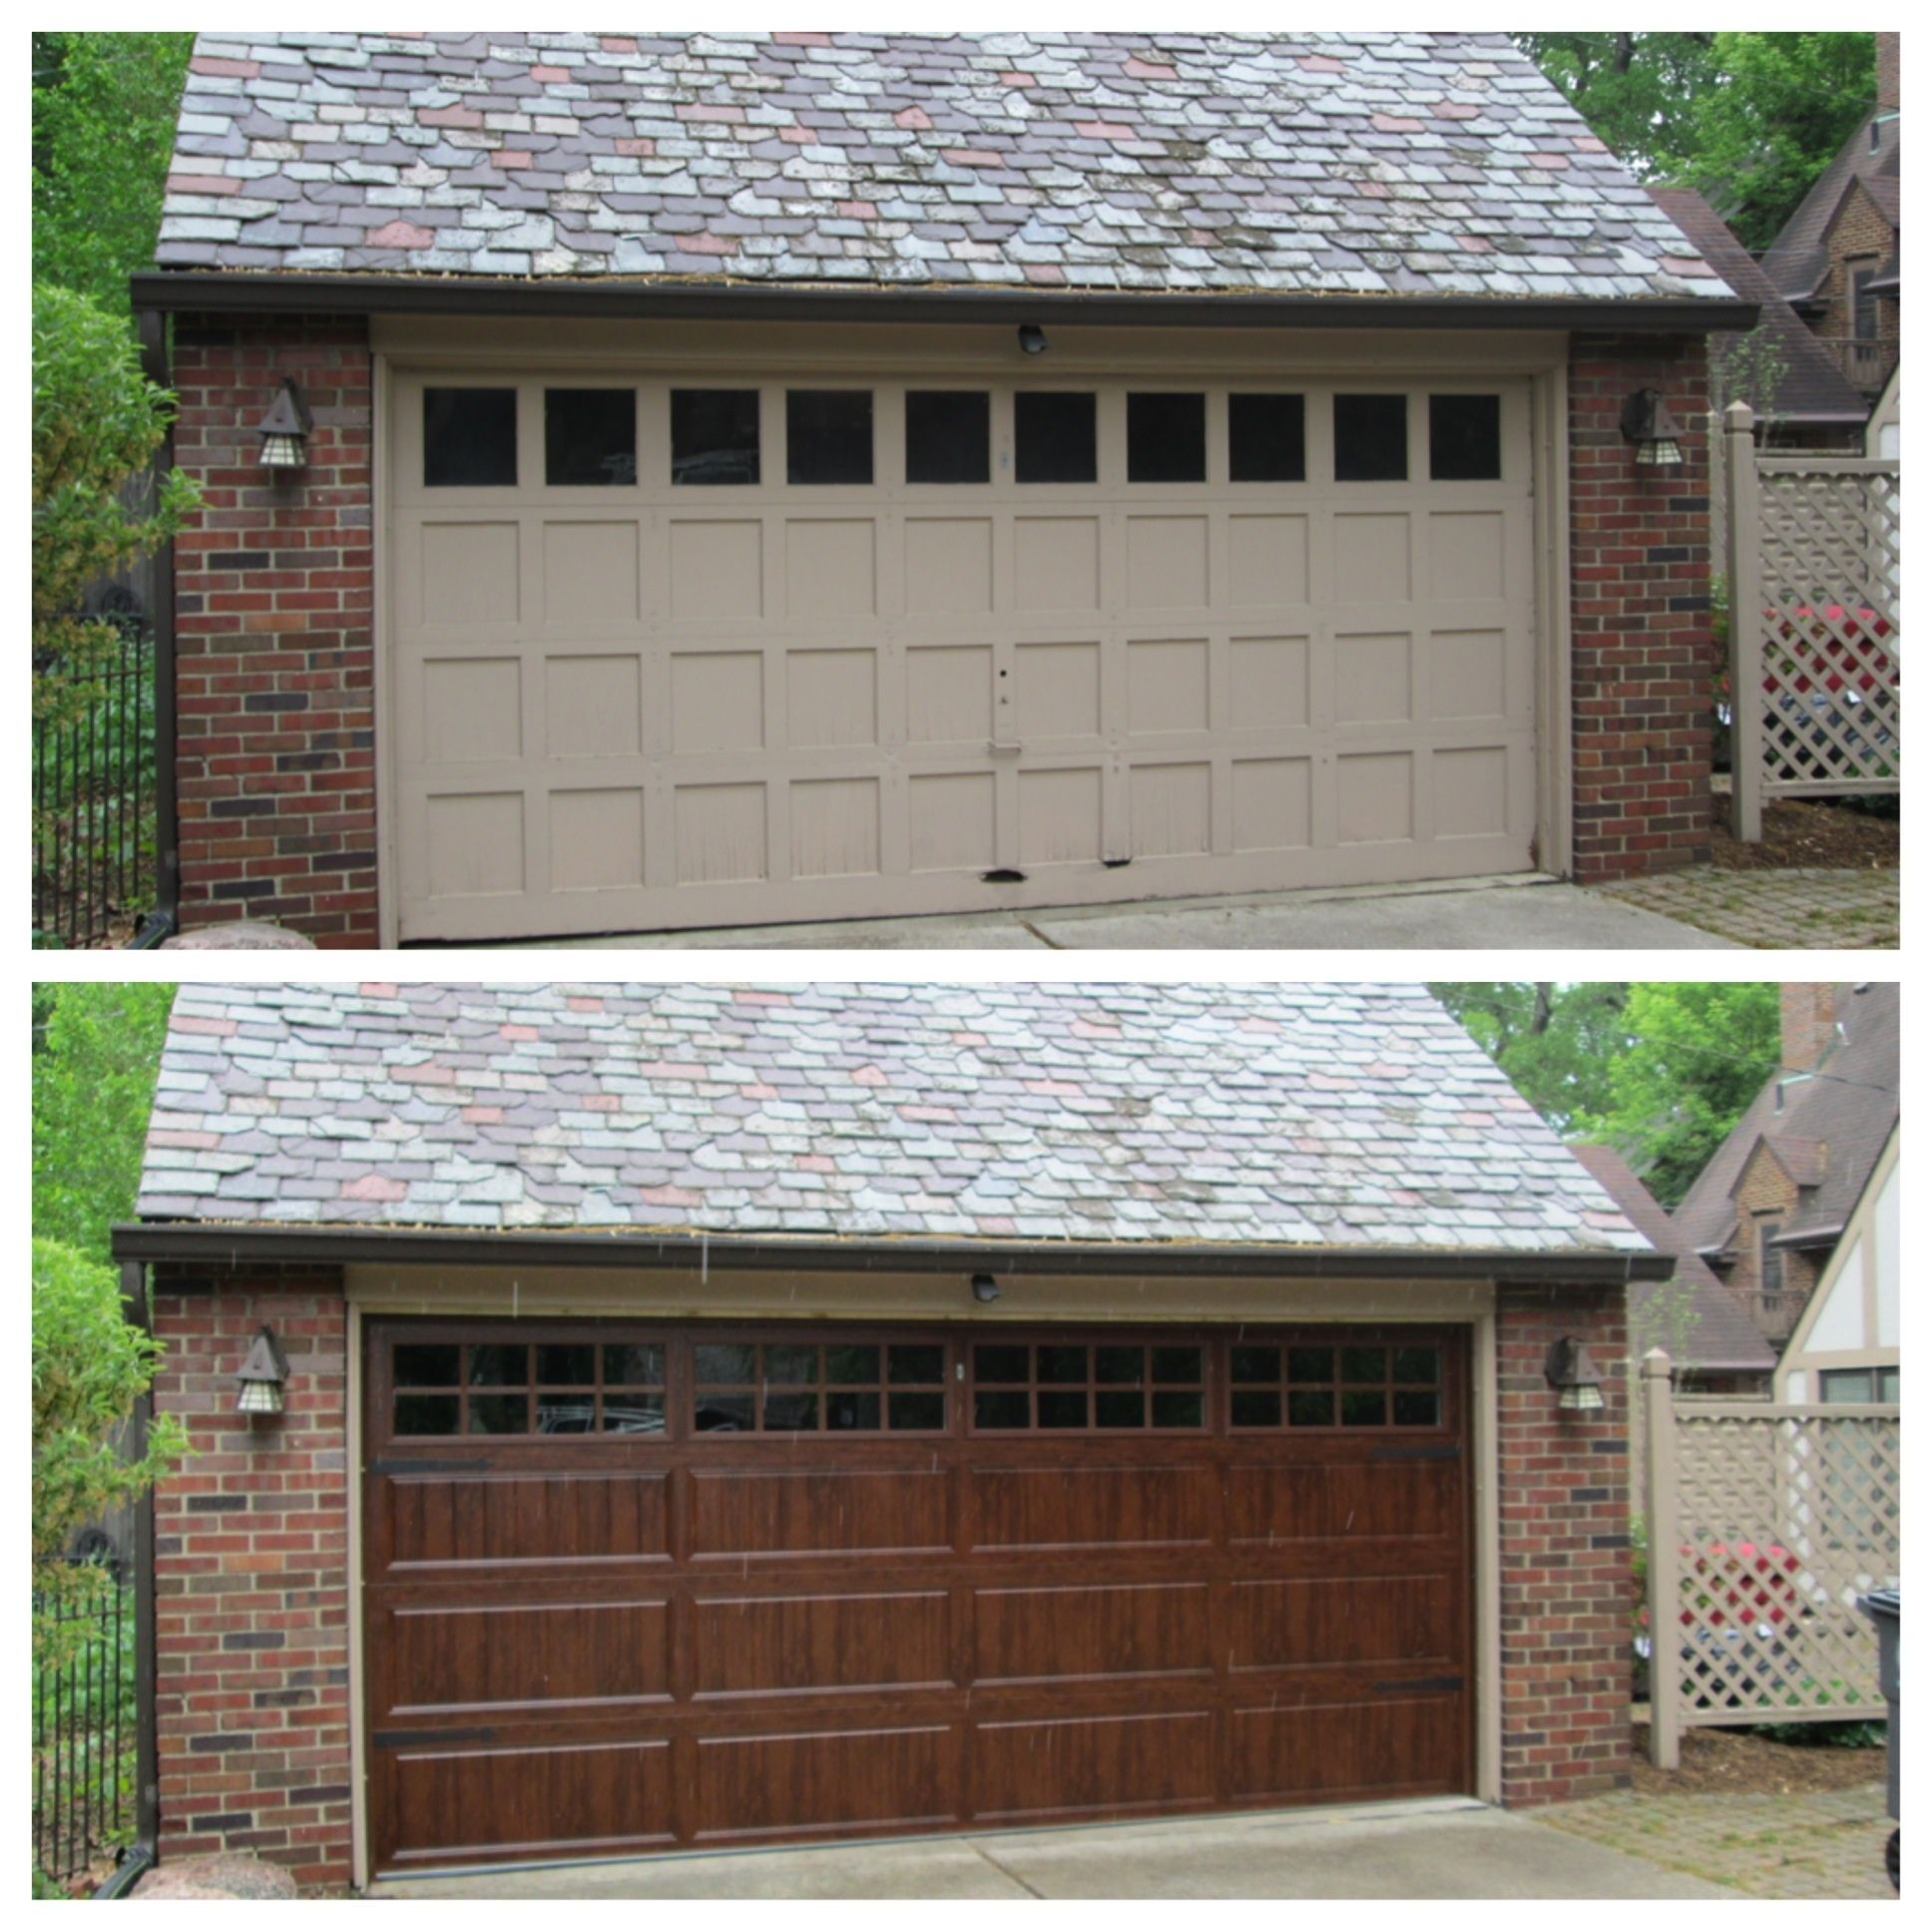 This Homeowner No Longer Wanted The Hassel Of Their Wood Door So They Chose To Replace It With A Steel Door Garage Doors Wooden Garage Doors Wood Garage Doors